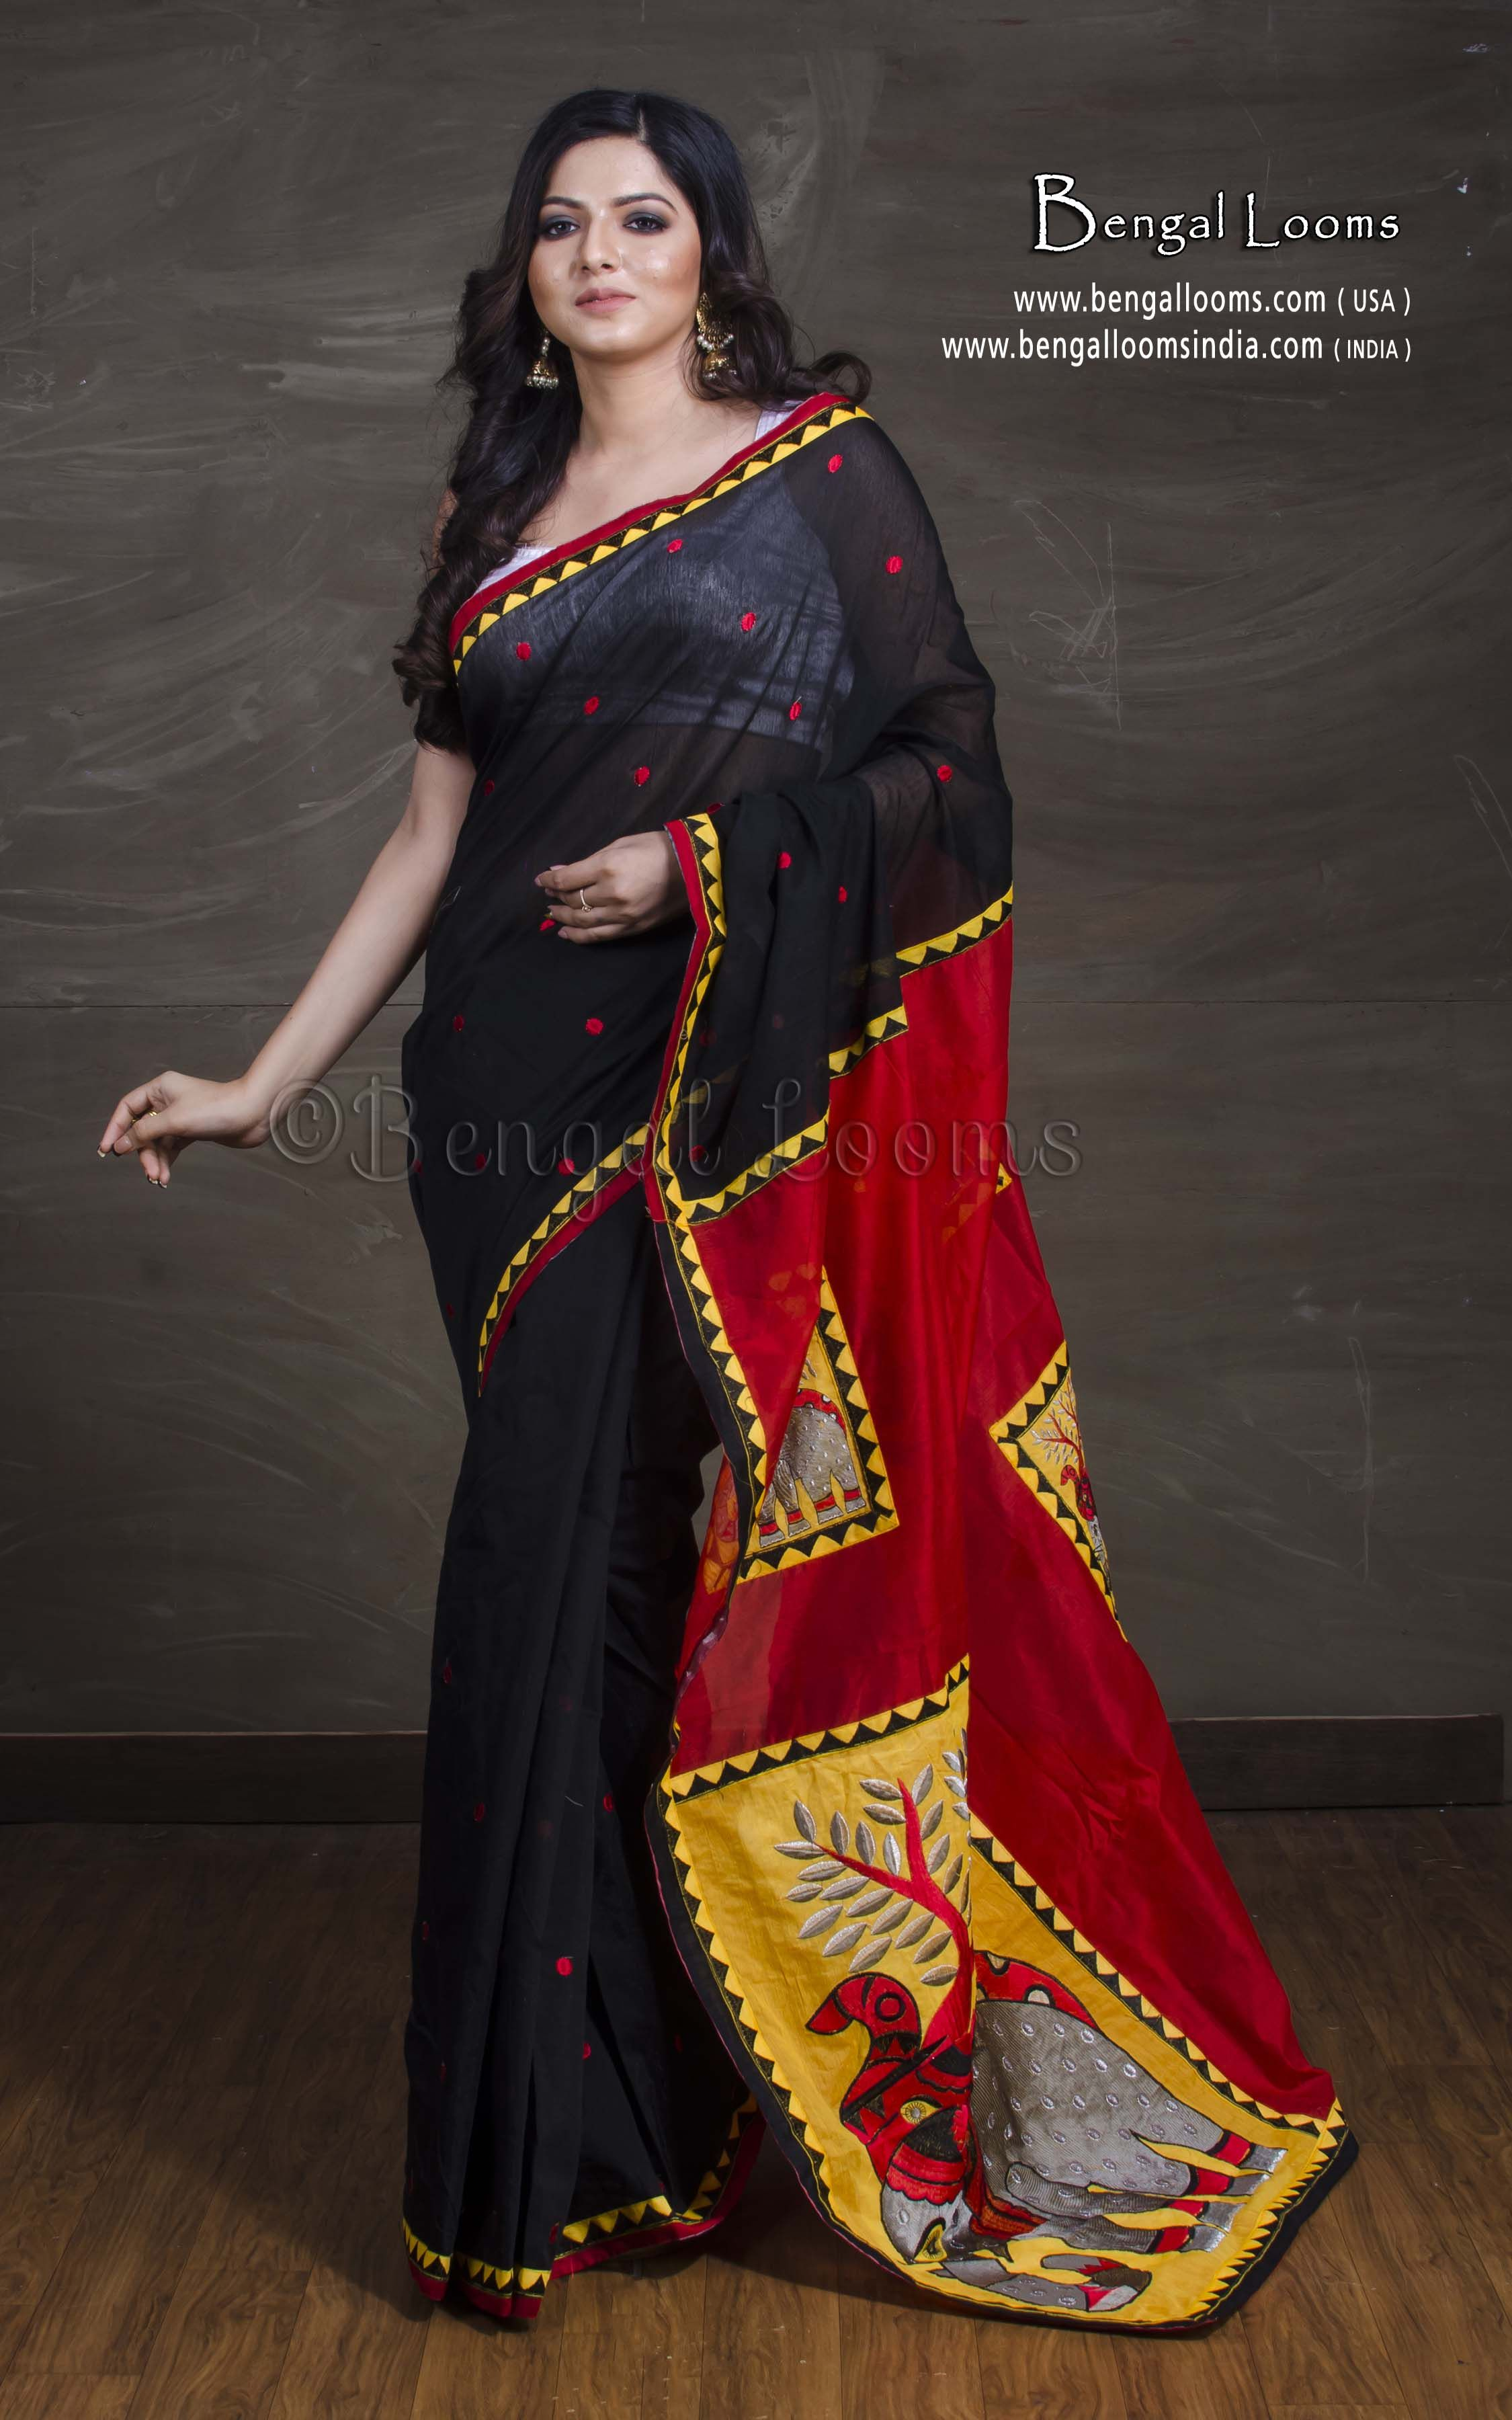 ab3b47f5254 Embroidery and Applic Work Chanderi Cotton Saree in Black and Red Website   - www.bengallooms.com